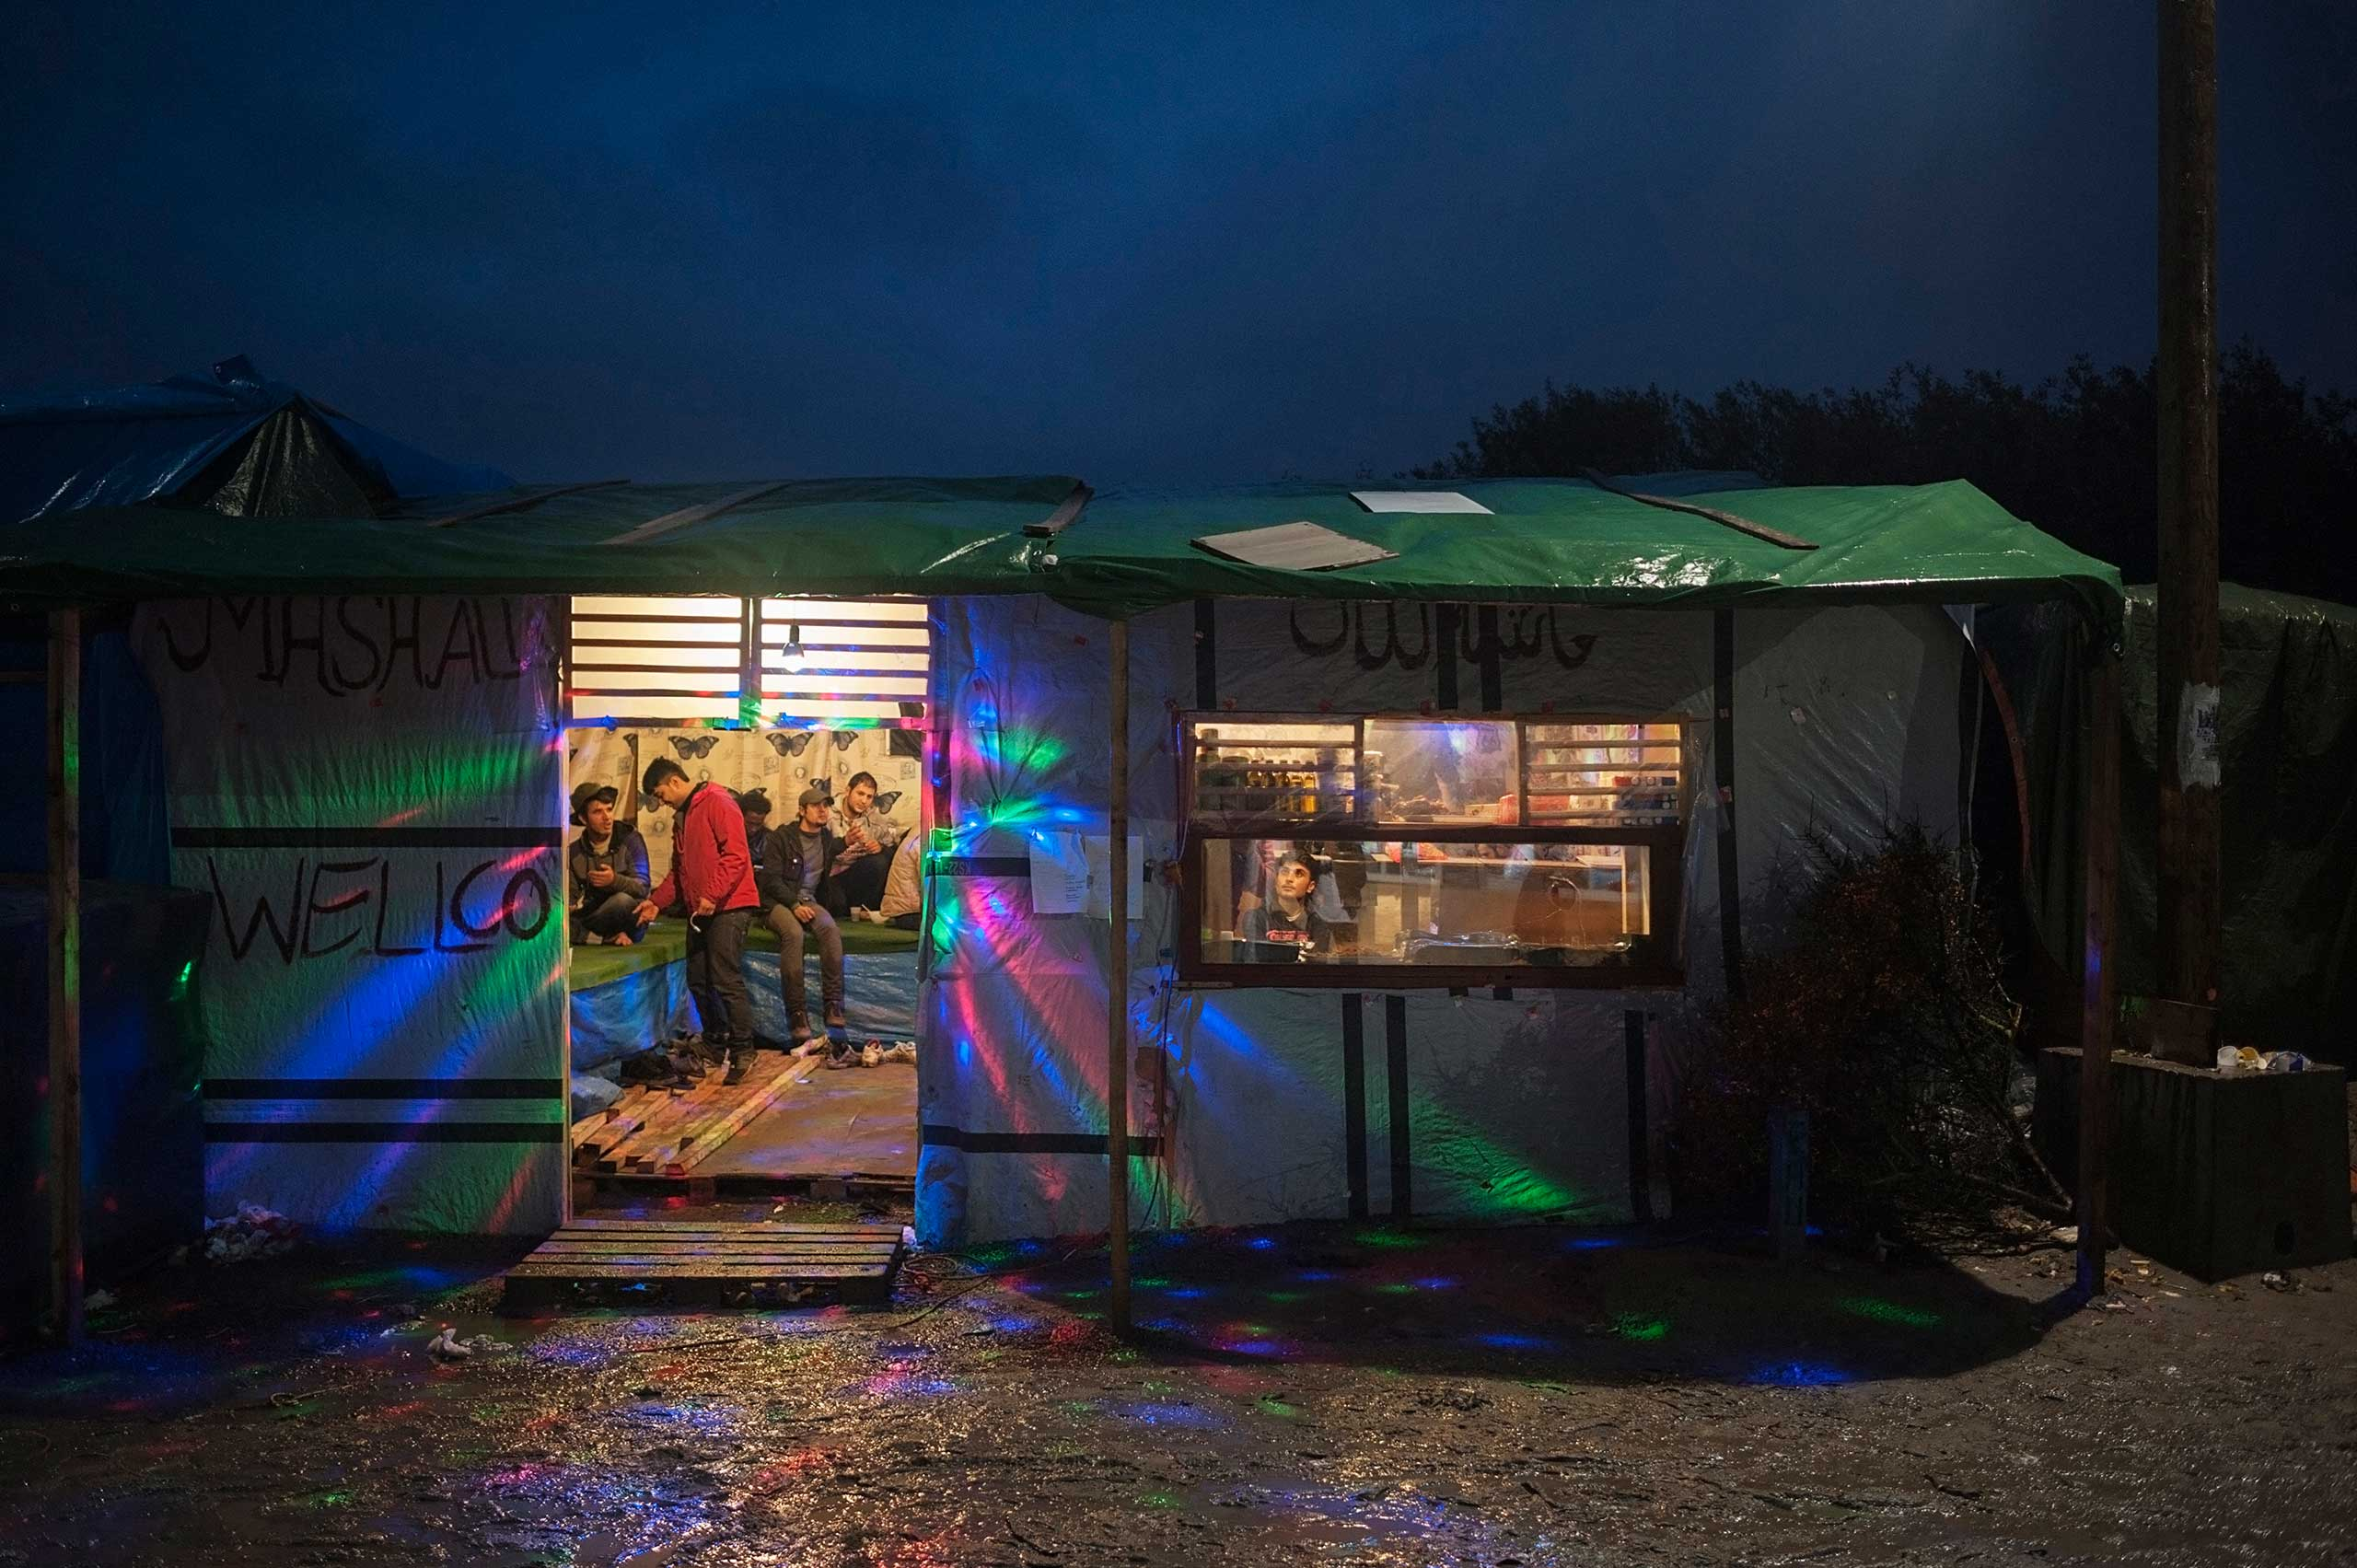 People chat in a Afghan Bar-Shop at the entrance of the so called Jungle in Calais, France on Nov. 6, 2015.